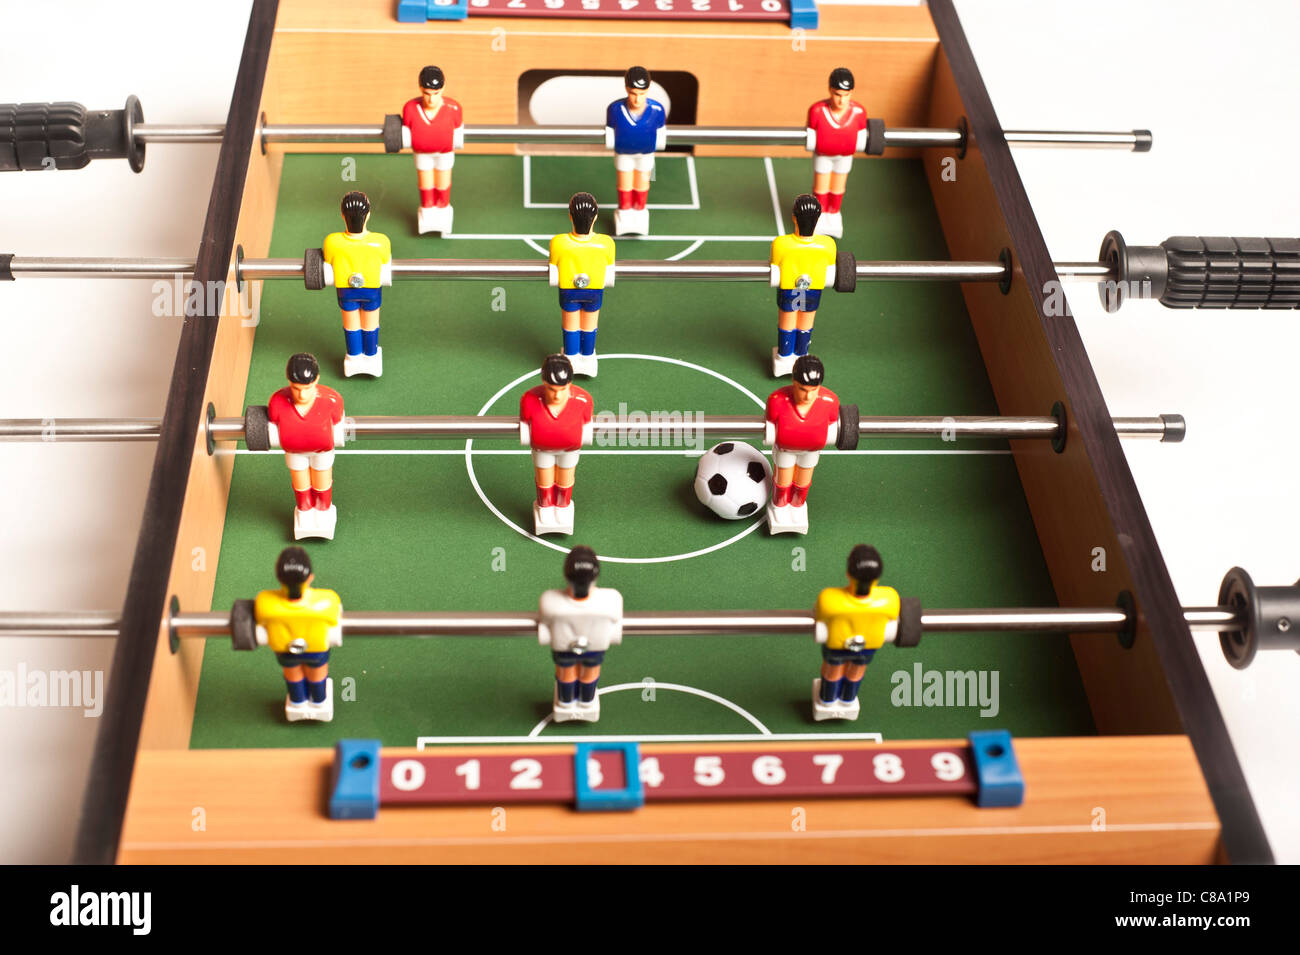 table football game or fussball - Stock Image